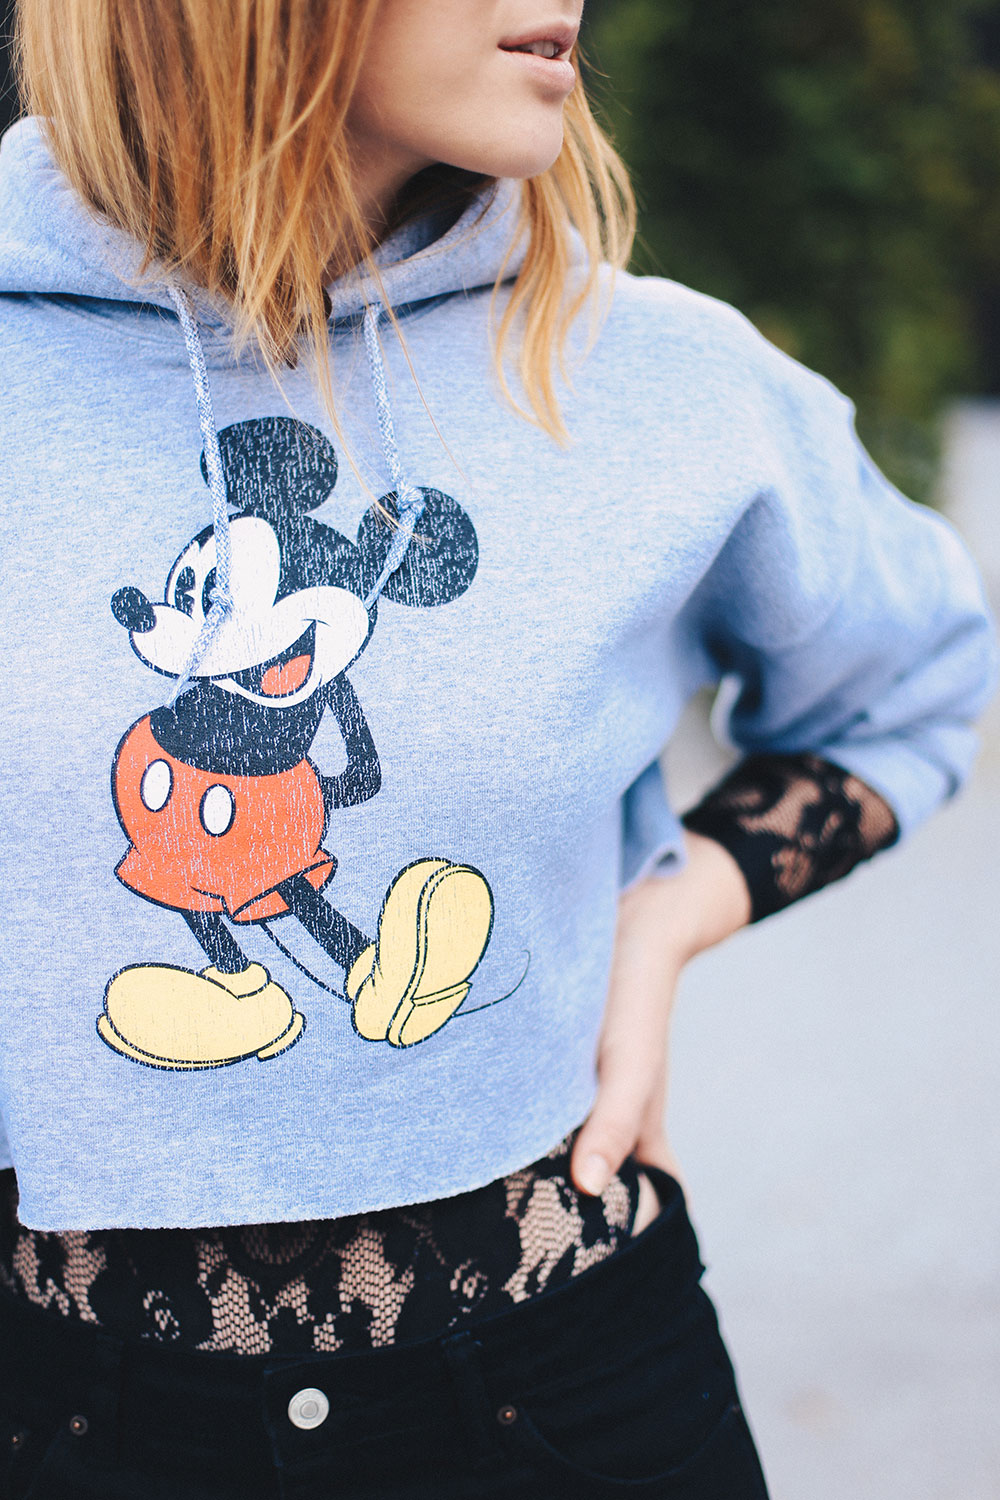 Cropped Mickey Mouse Pullover, Spitzenbody, Mom Jeans, Tasche aus Webpelz, cropped Kapuzenpullover, Streetstyle, Fashion Blog, Mode Blog, whoismocca.com